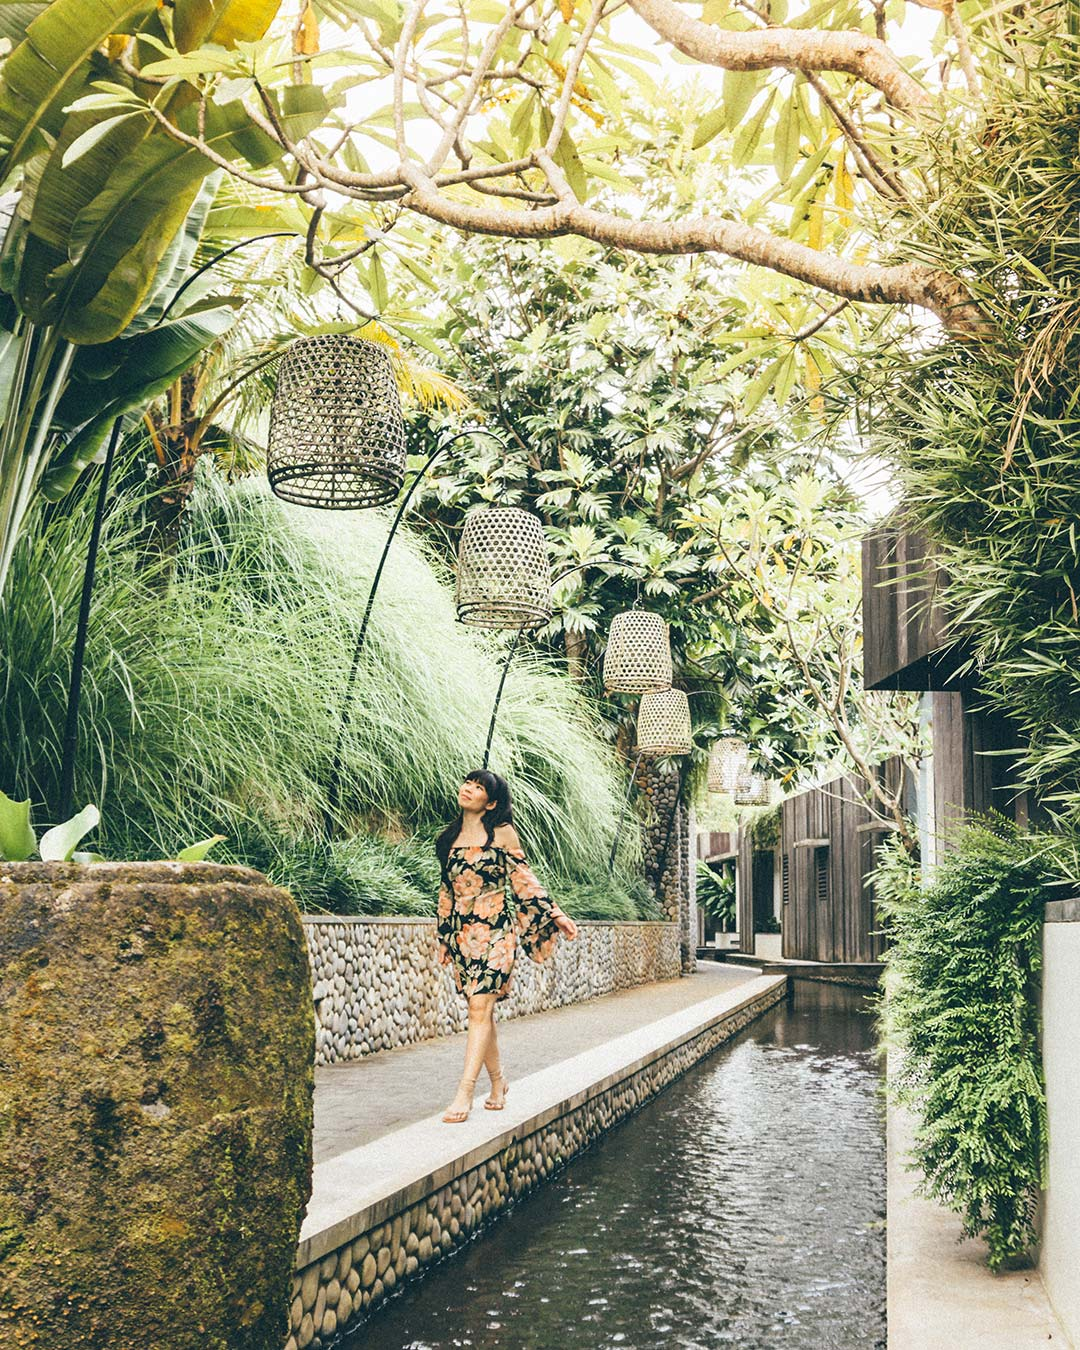 The Purist Villas, Ubud, Bali